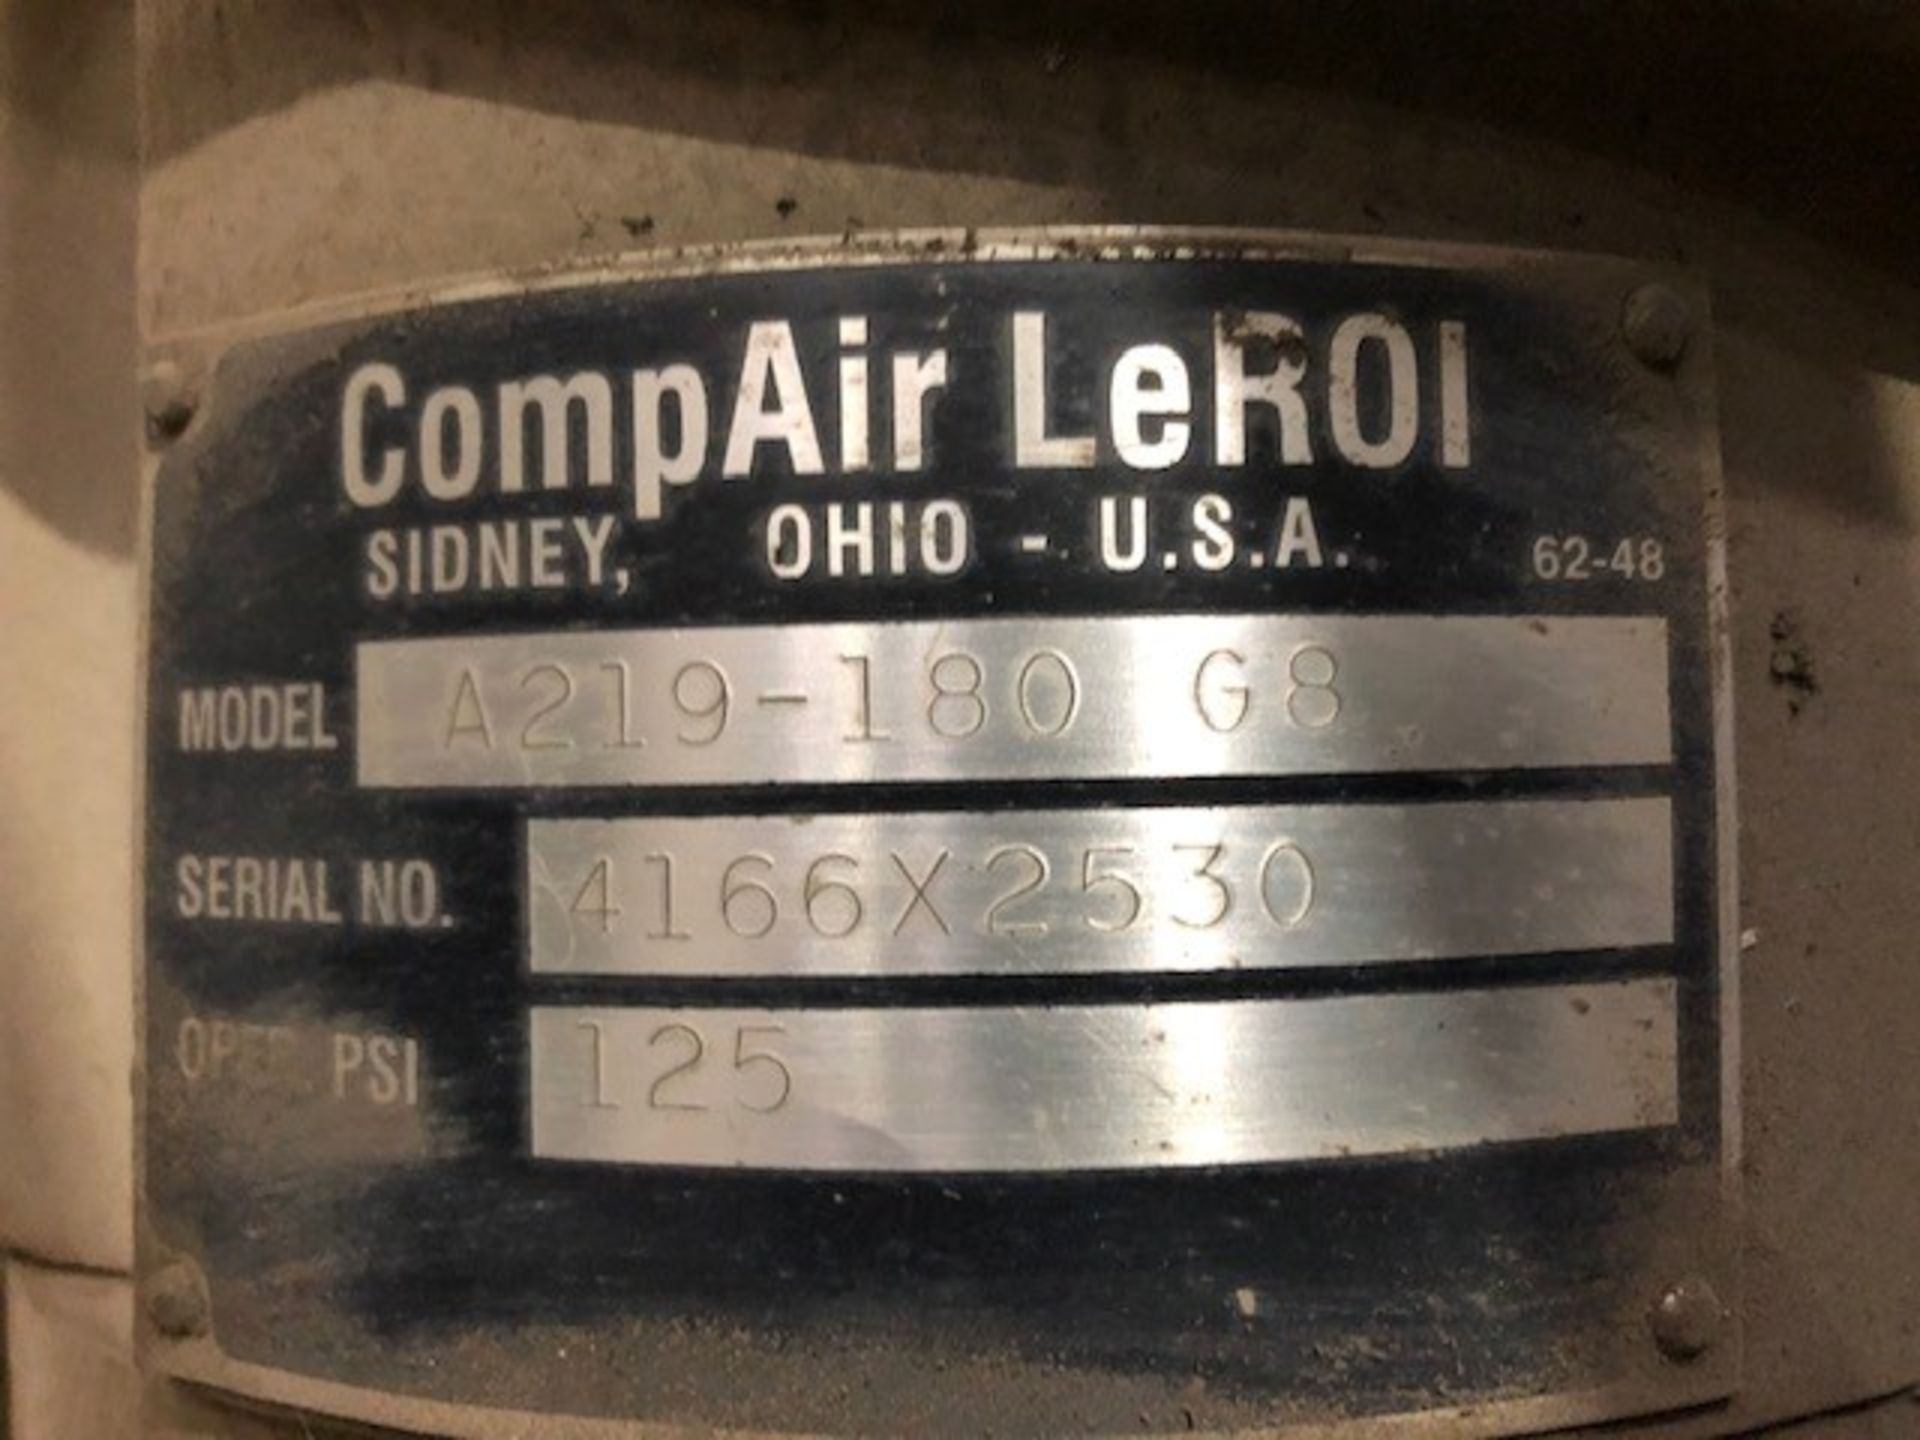 Lot 50 - Air Compressor 50hp #1 CompAir LeRoi, model: A219-180 G8, s/n: 4166X2530, 125psi, 50hp 600v